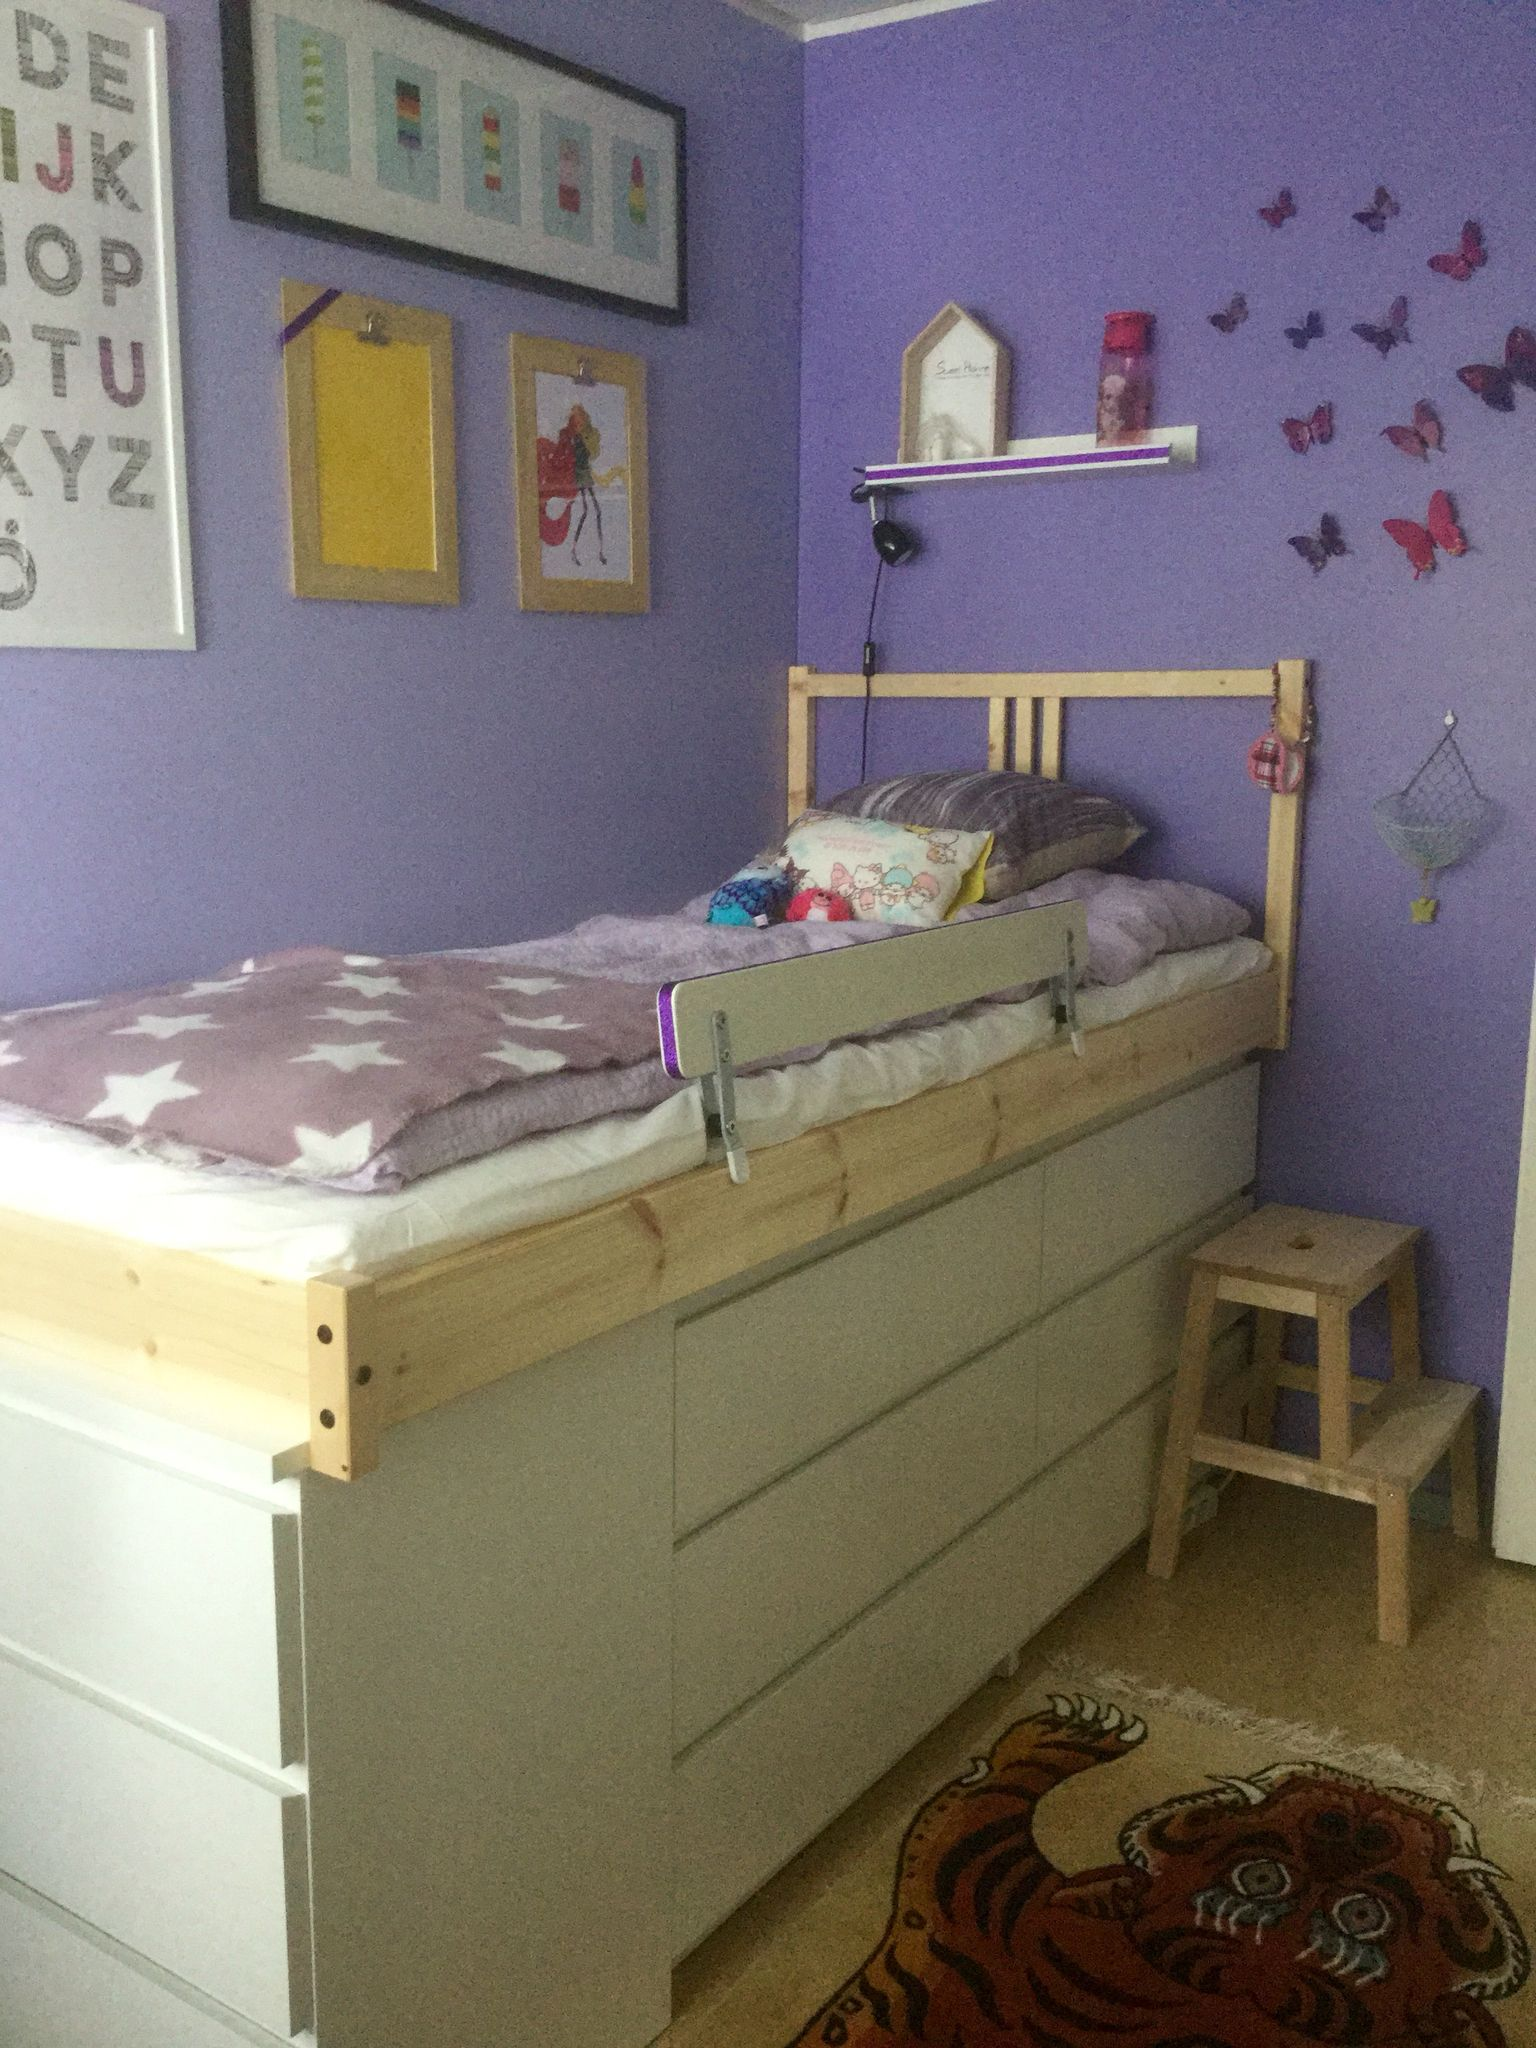 3 X Malm Dresser Fjellse Bed DIY In A Tiny Girl Bedroom